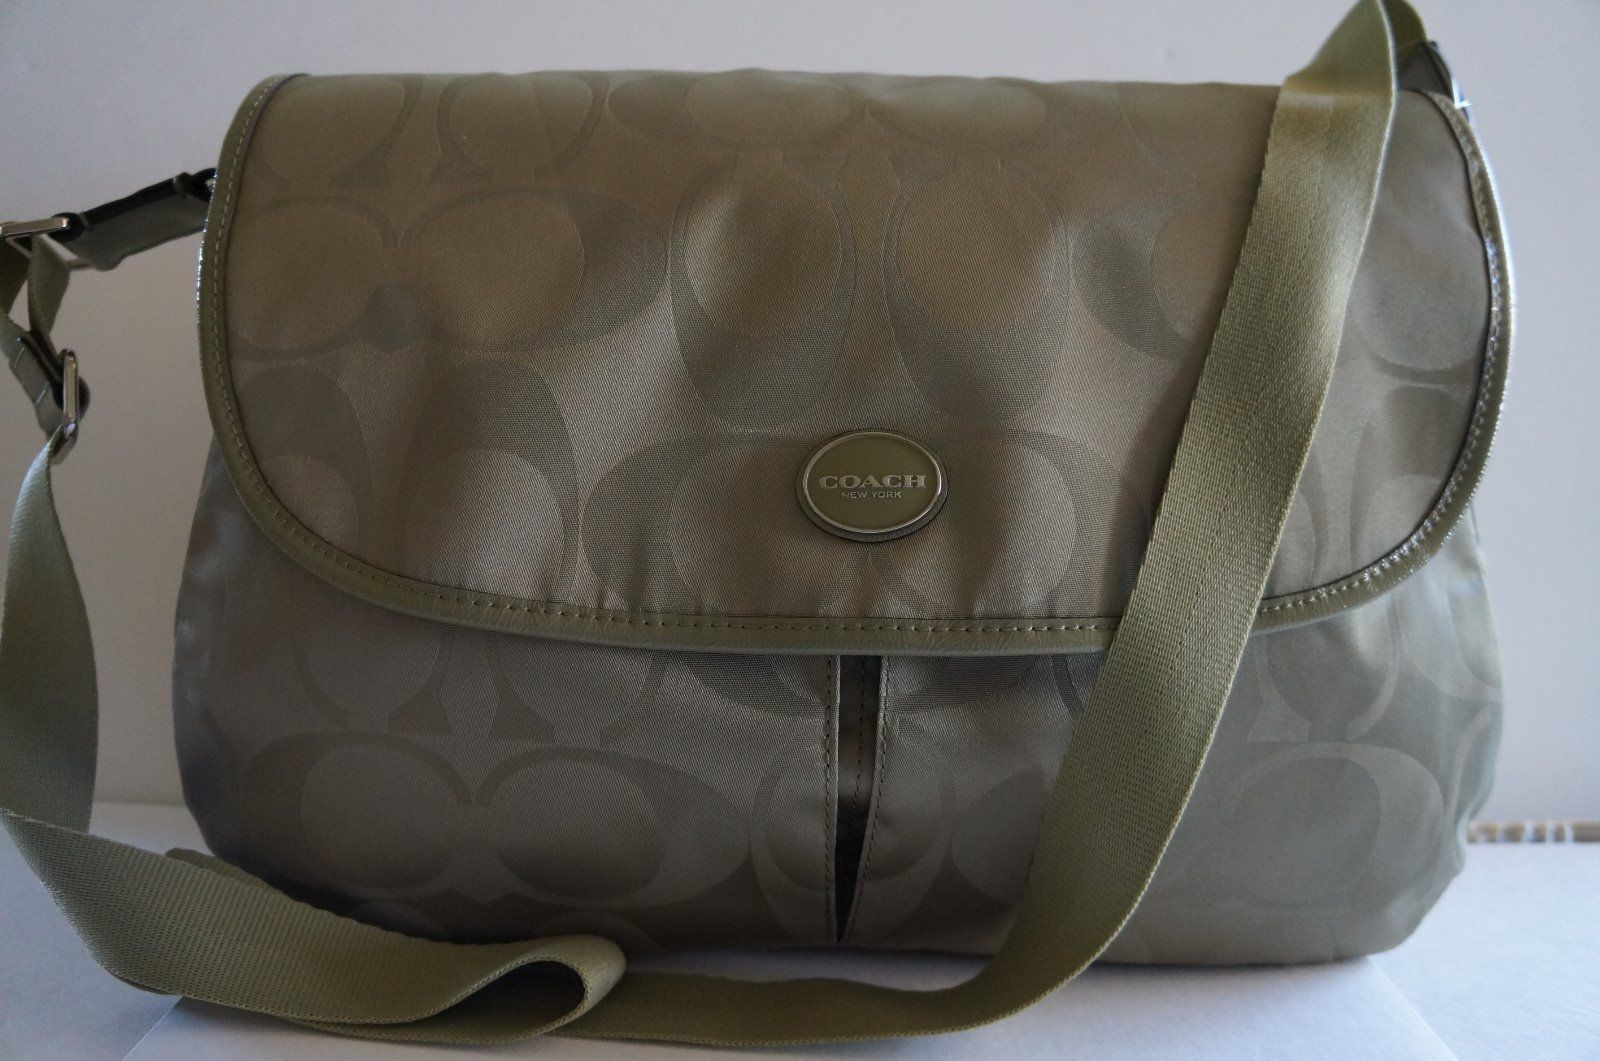 กระเป๋าสะพายข้าง COACH SIGNATURE NYLON MESSENGER CROSSBODY SHOULDER BAG SAGE  F77490